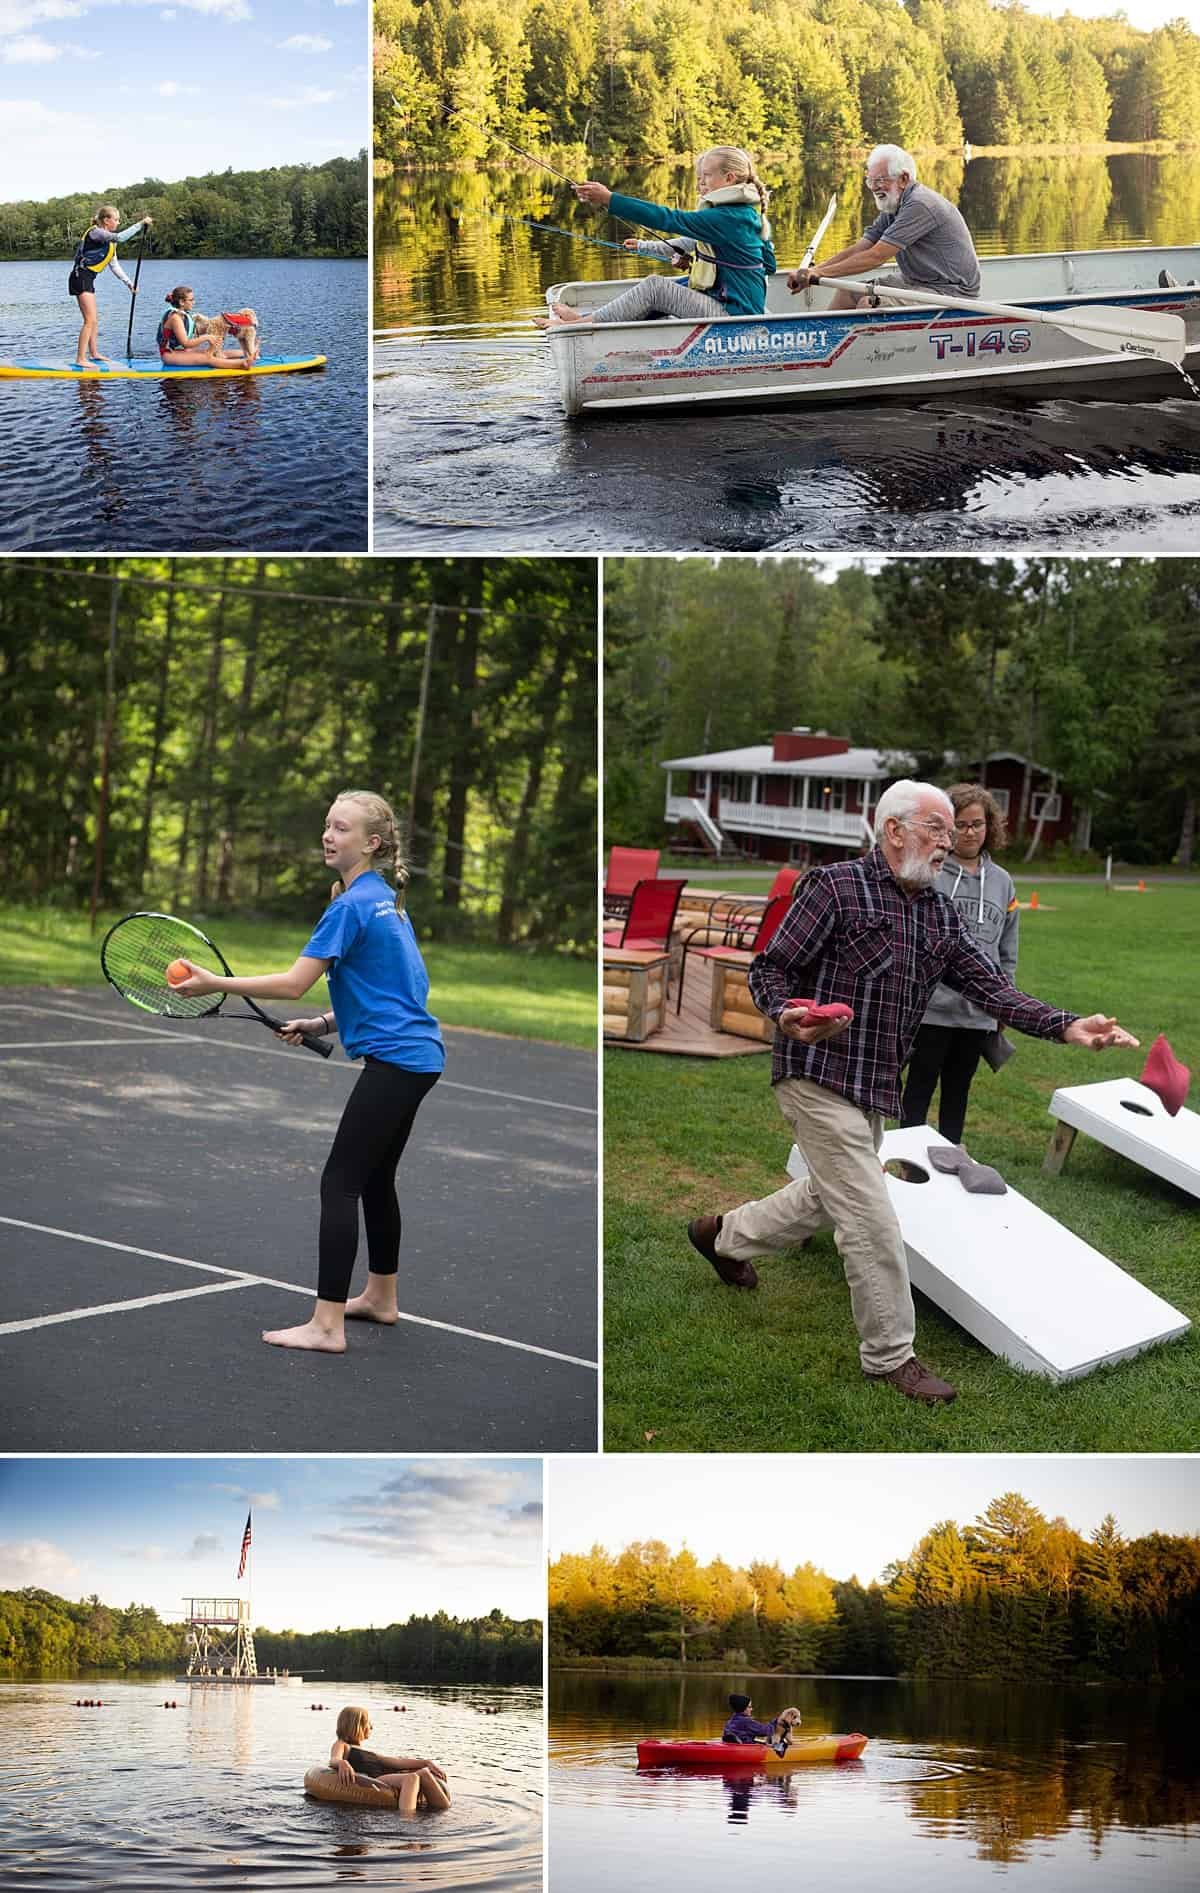 A collage of photos from the Wisconsin lake resort Afterglow. Including kayaking, boating, tennis, and swimming.